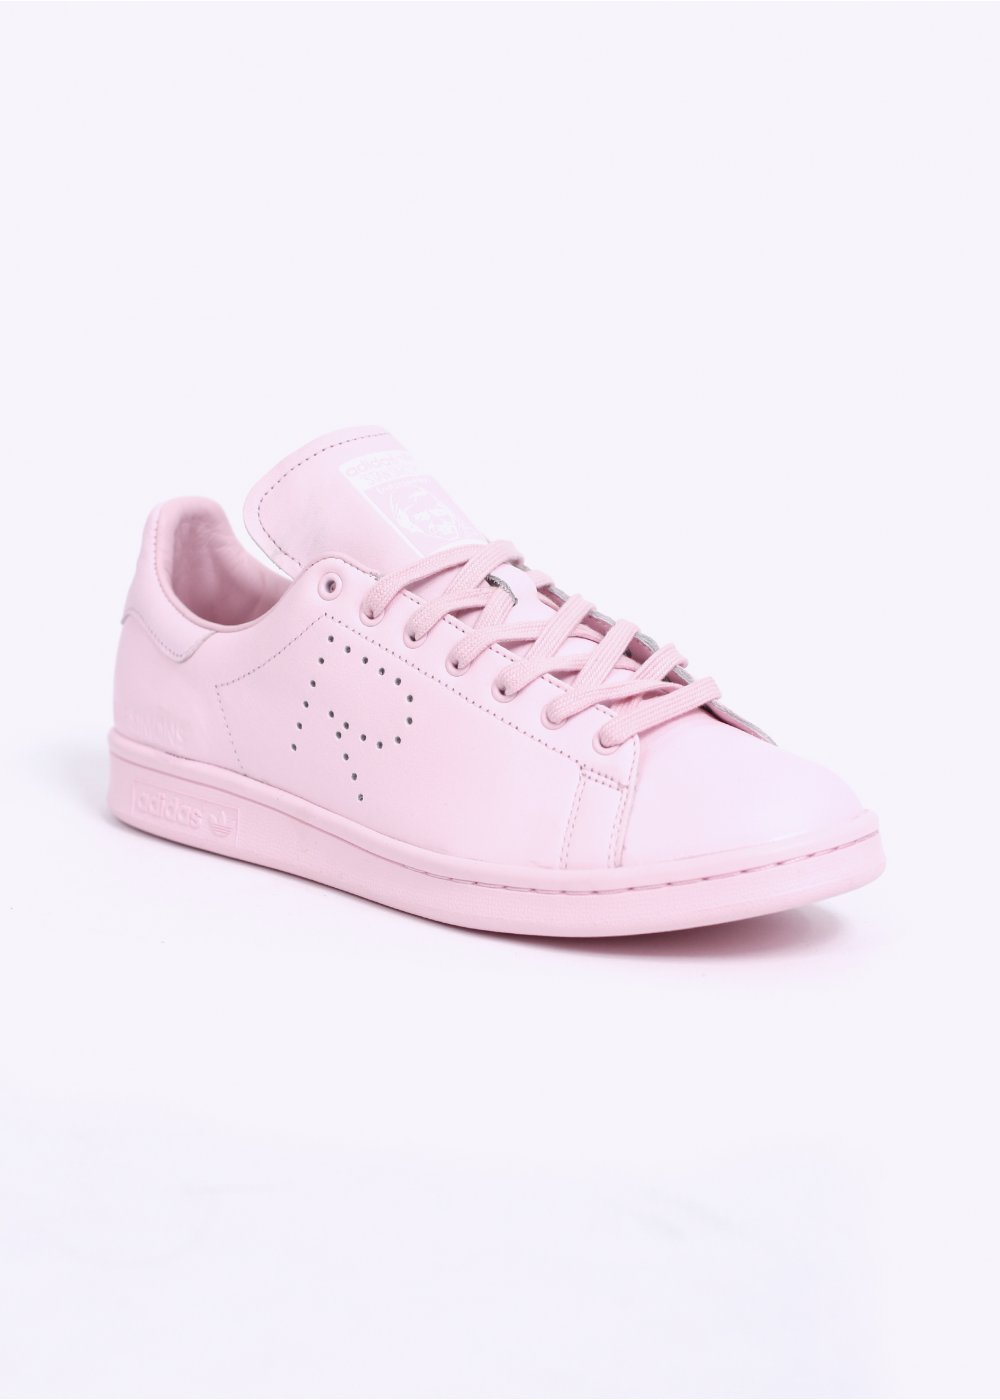 on sale 32d0f f144d adidas Originals by Raf Simons STAN SMITH TRAINERS - PINK / WHITE